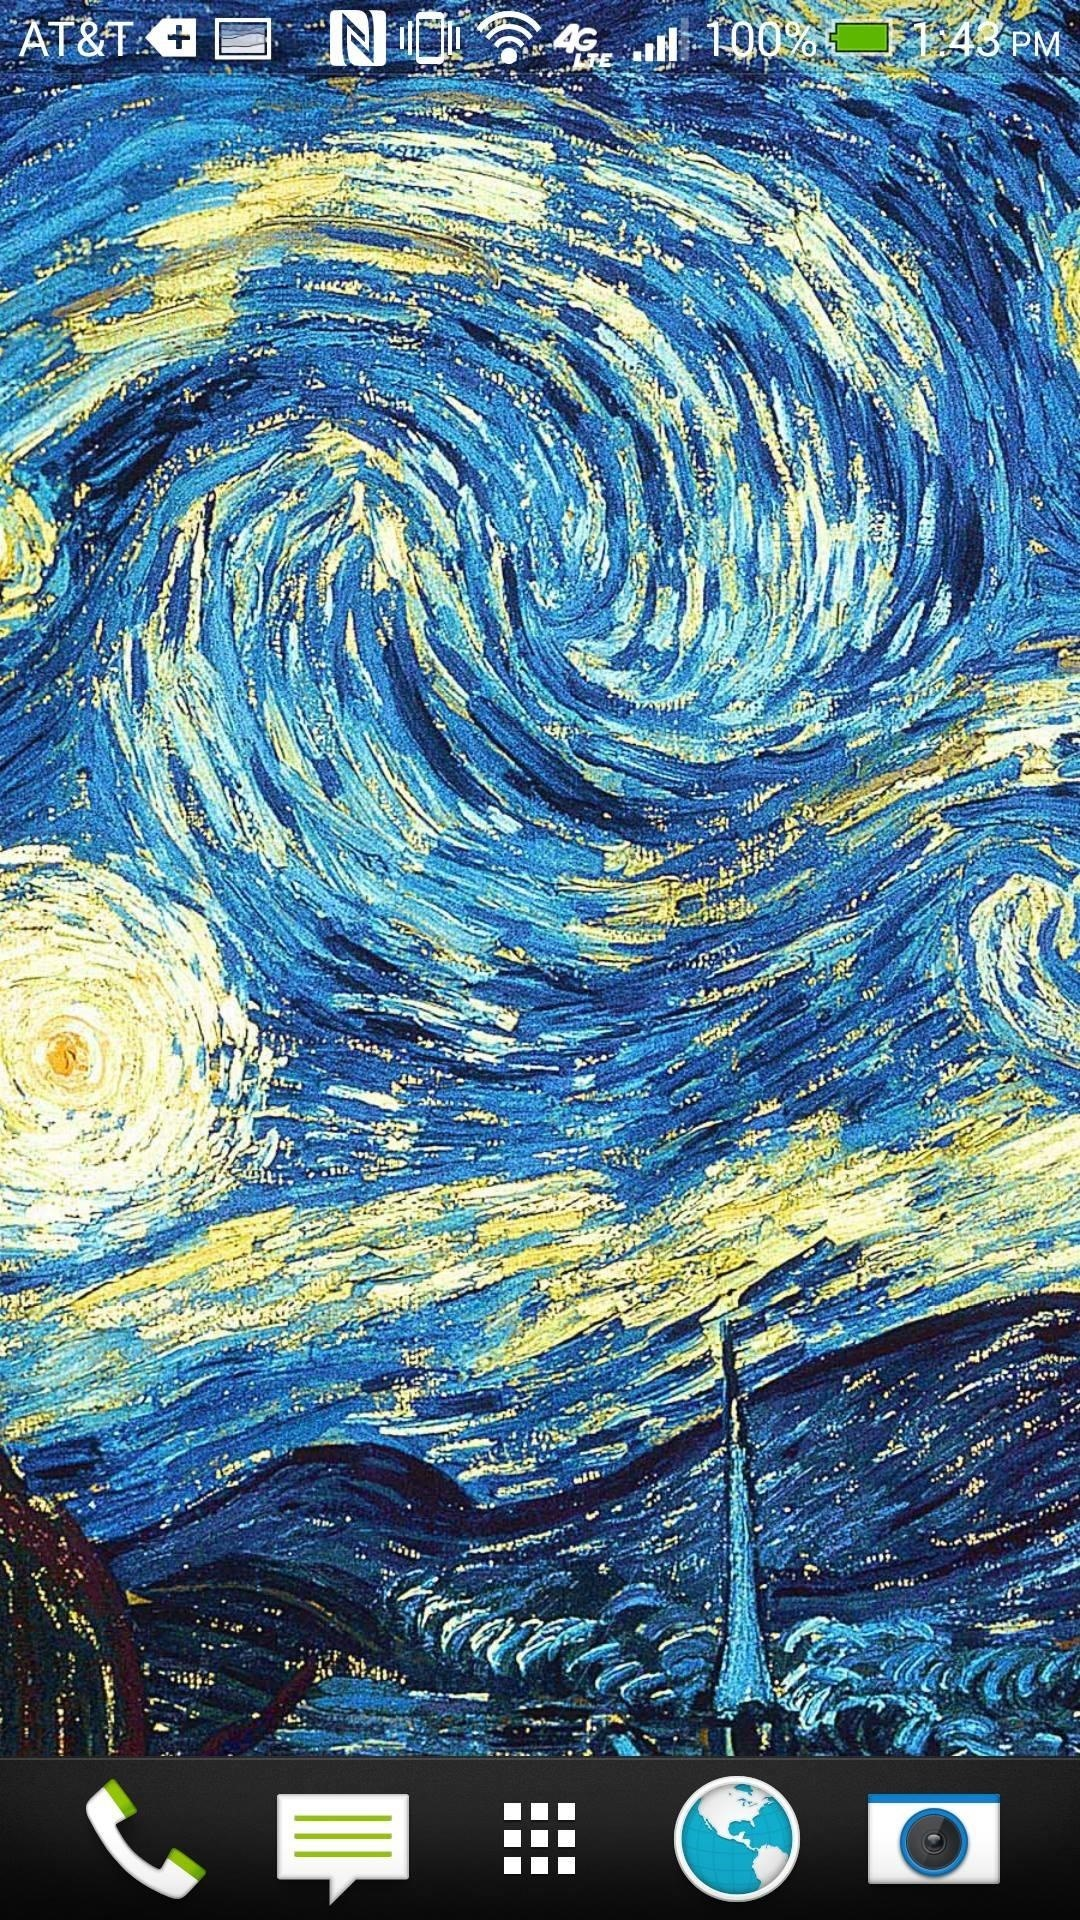 Turn Your HTC One into a Living Art Gallery with New Wallpapers from Famous Painters Every Day